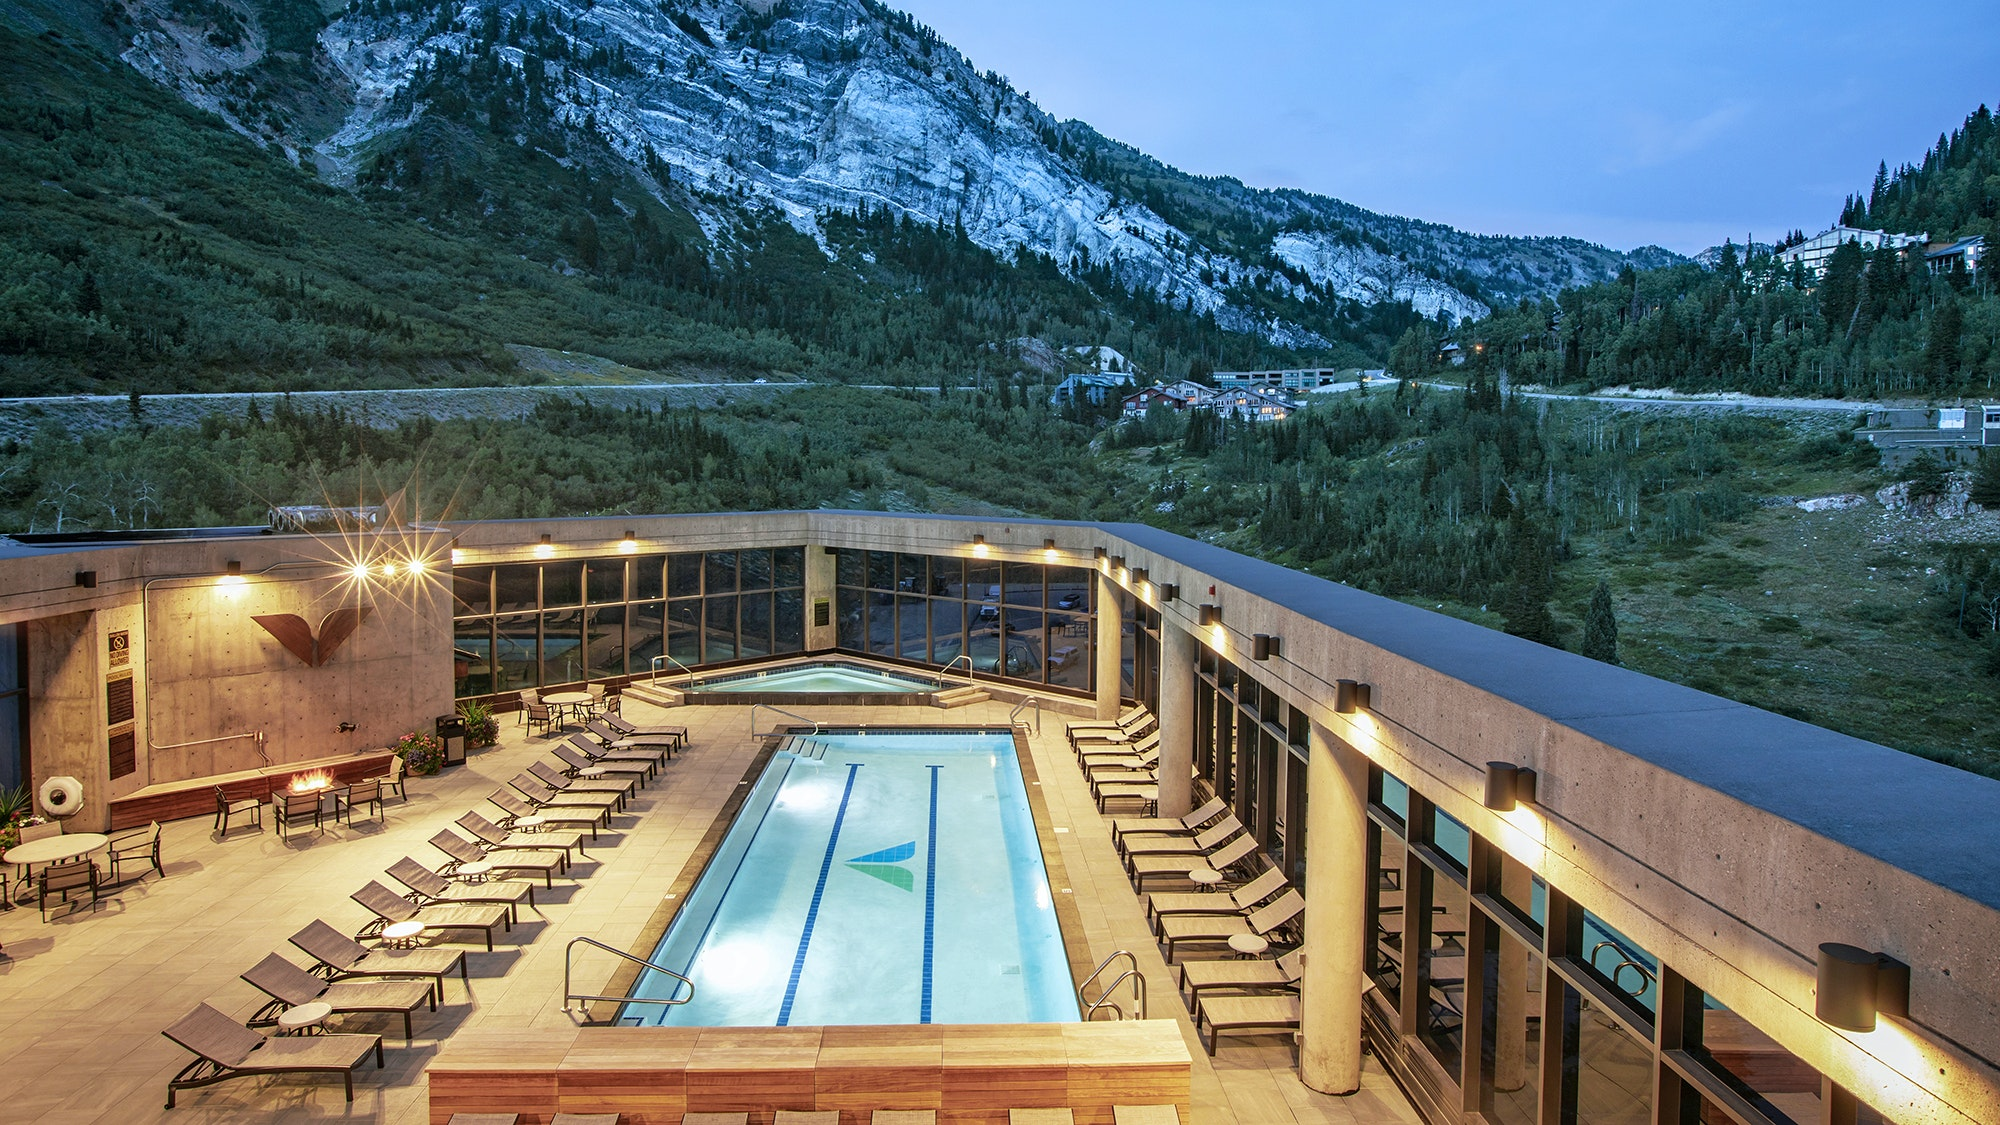 The Cliff Spa℠ at Snowbird